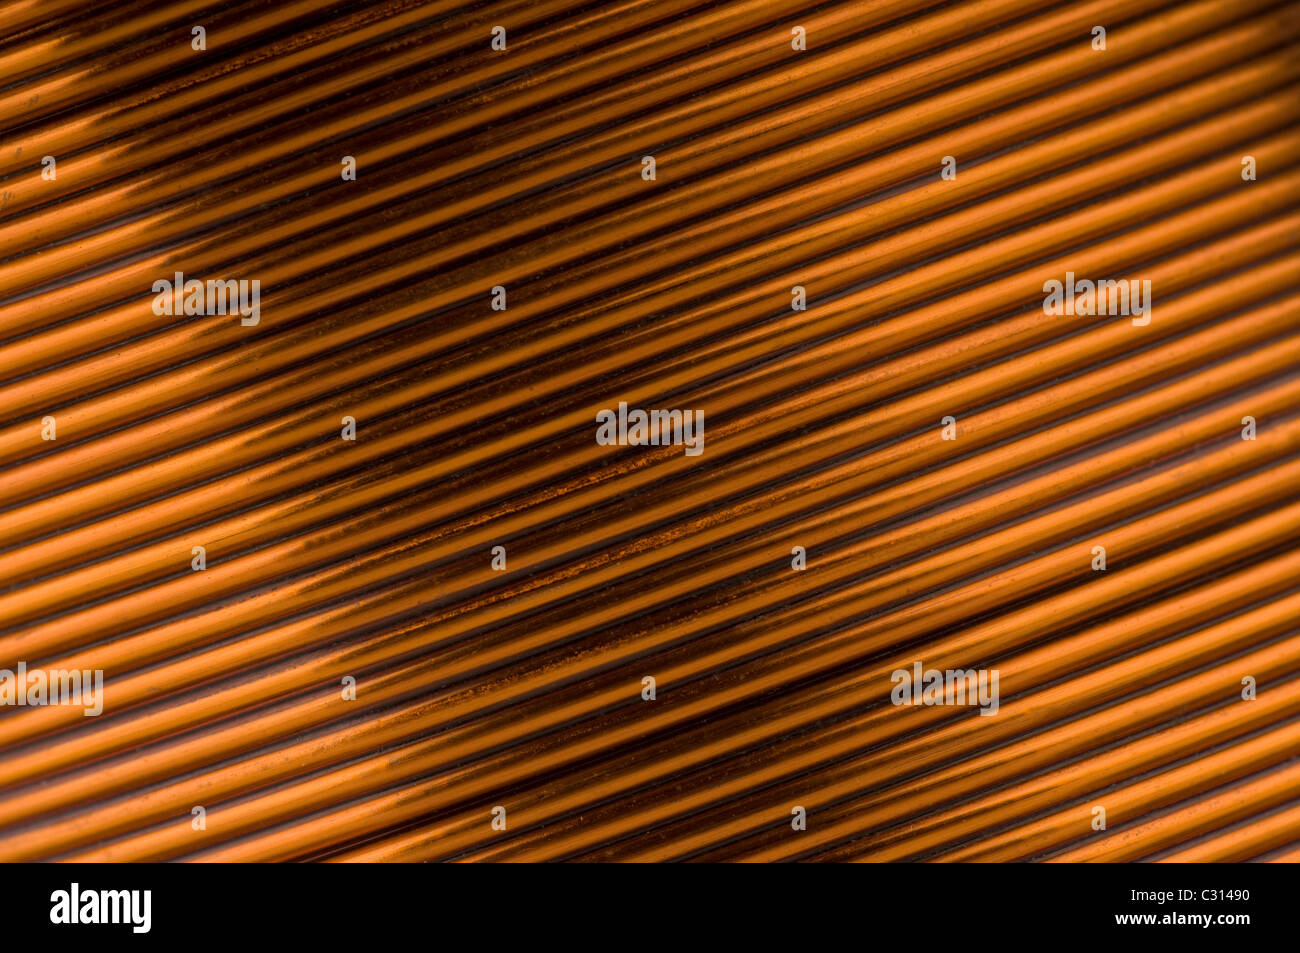 Copper Coil Stockfotos & Copper Coil Bilder - Alamy